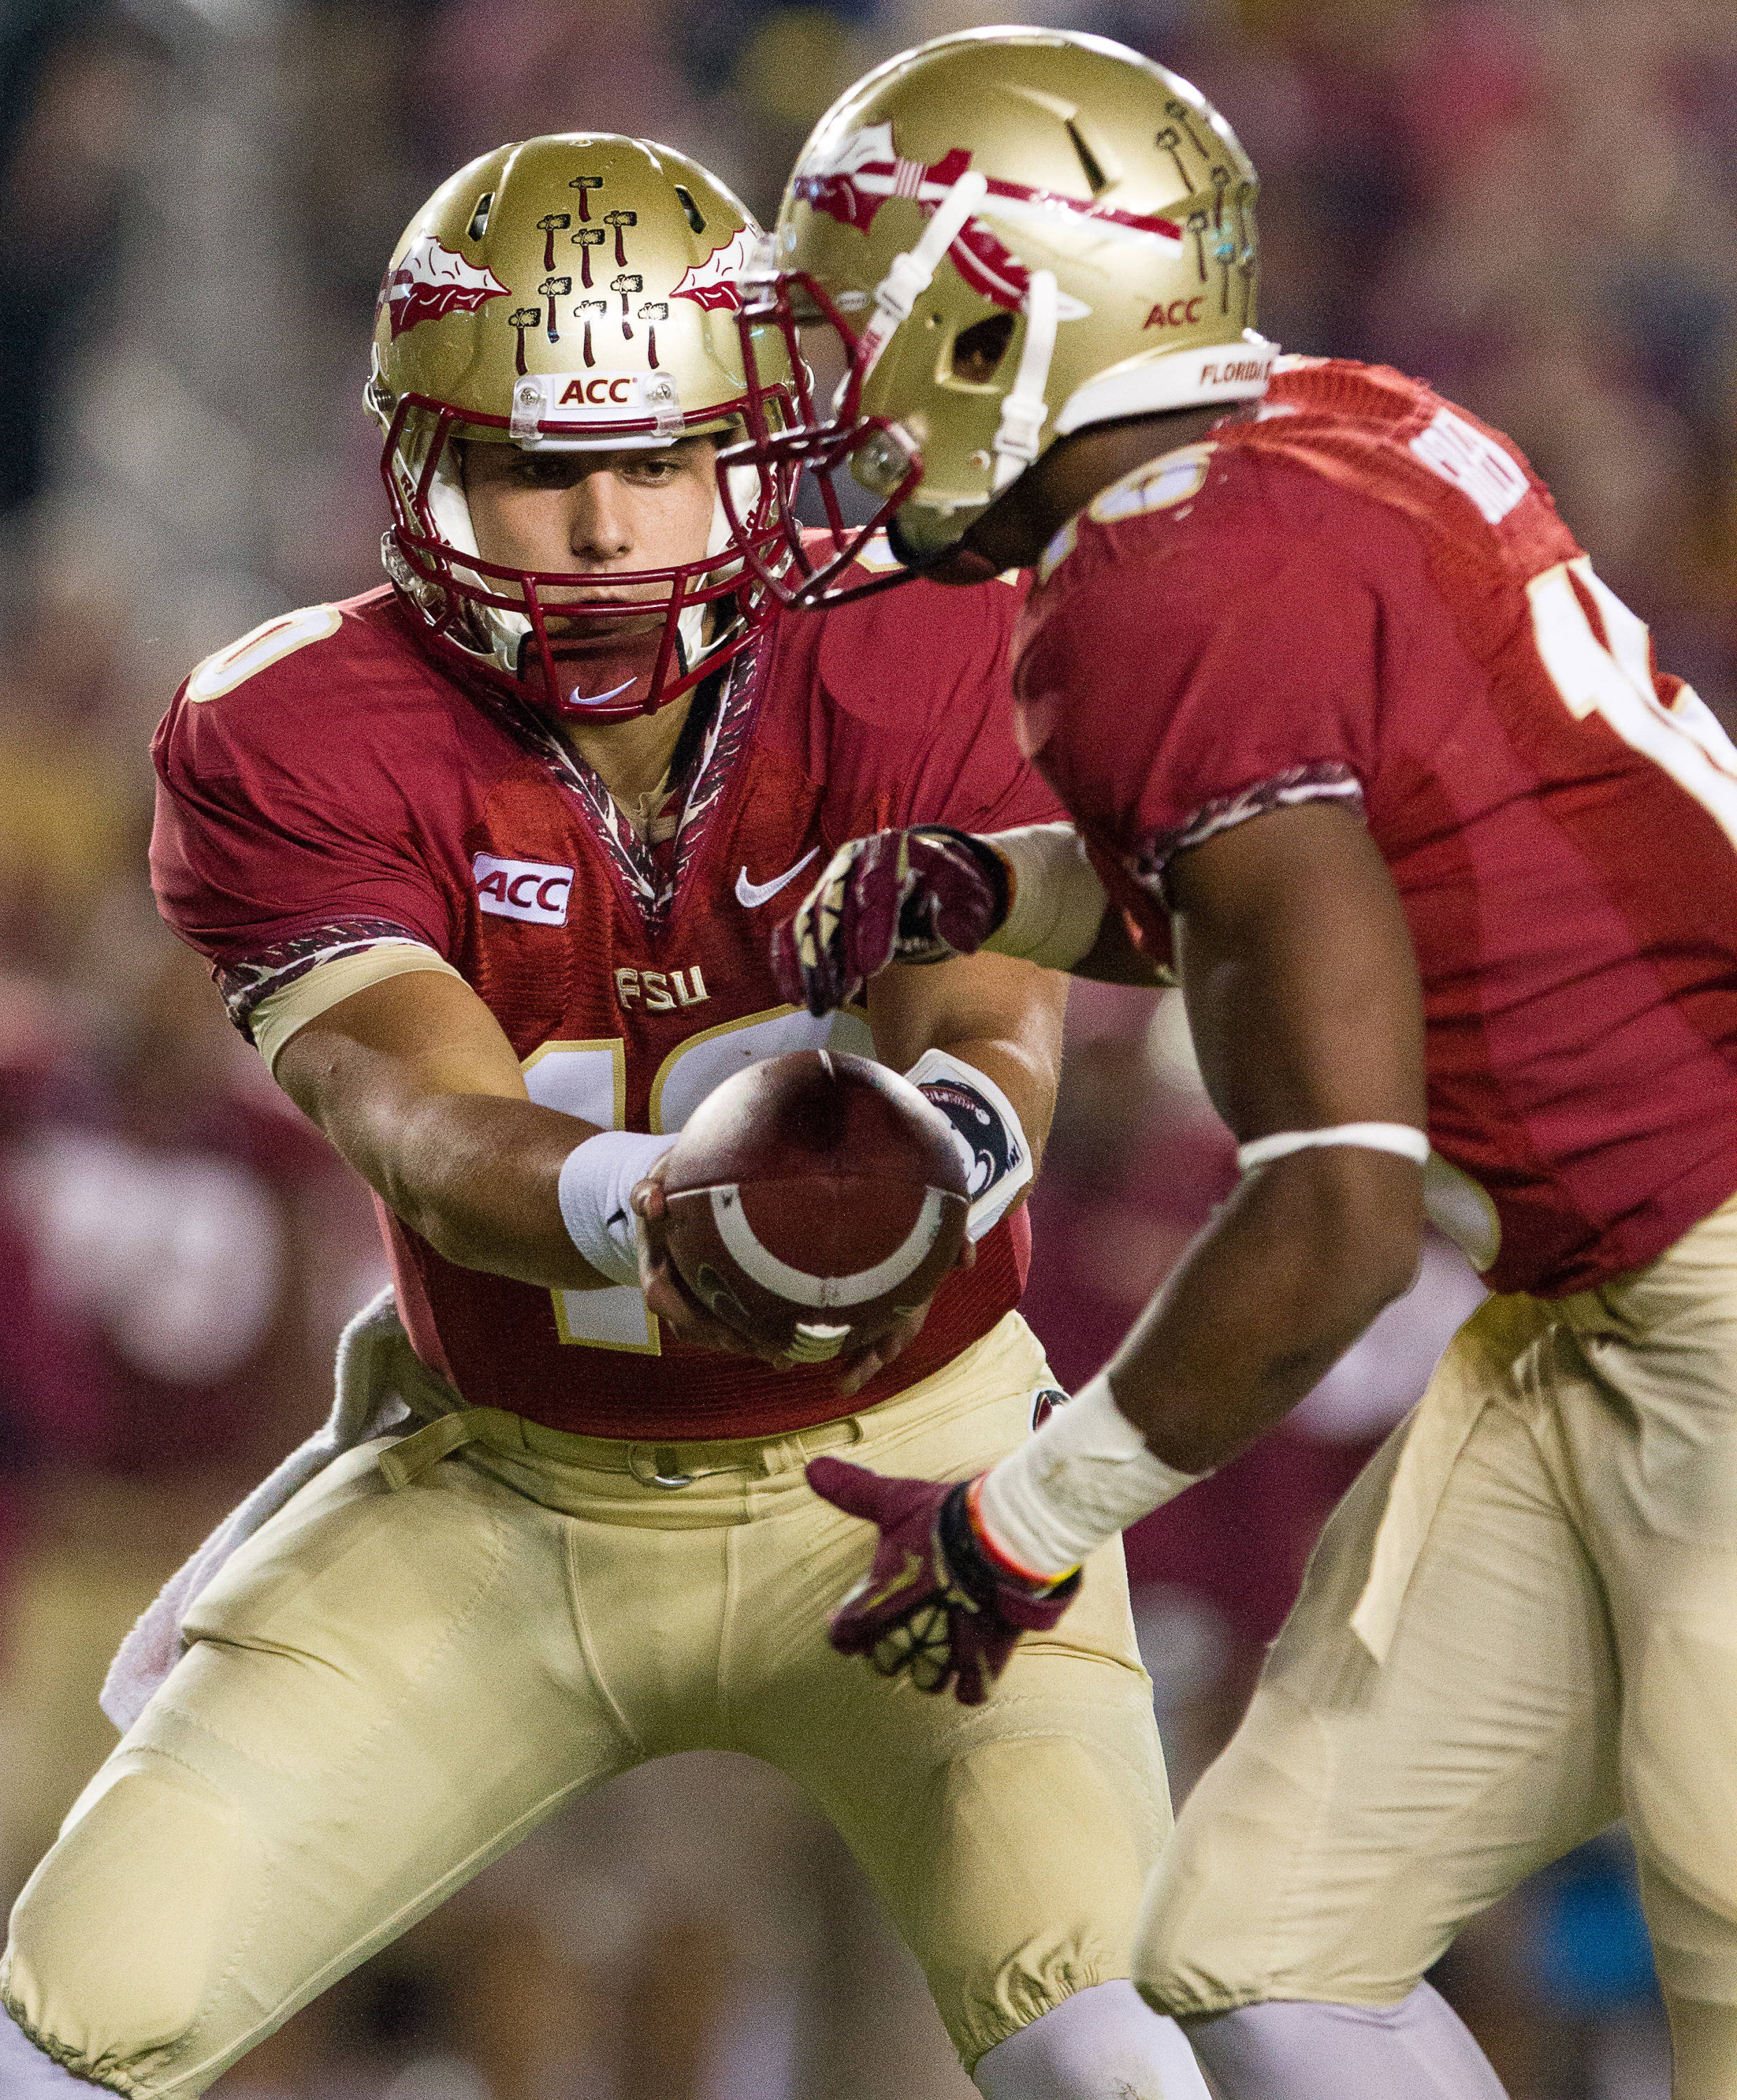 Sean Maguire (10) makes a handoff during FSU Football's 80-14 victory over Idaho in Tallahassee, Fla on Saturday, November 23, 2013. Photos by Mike Schwarz.